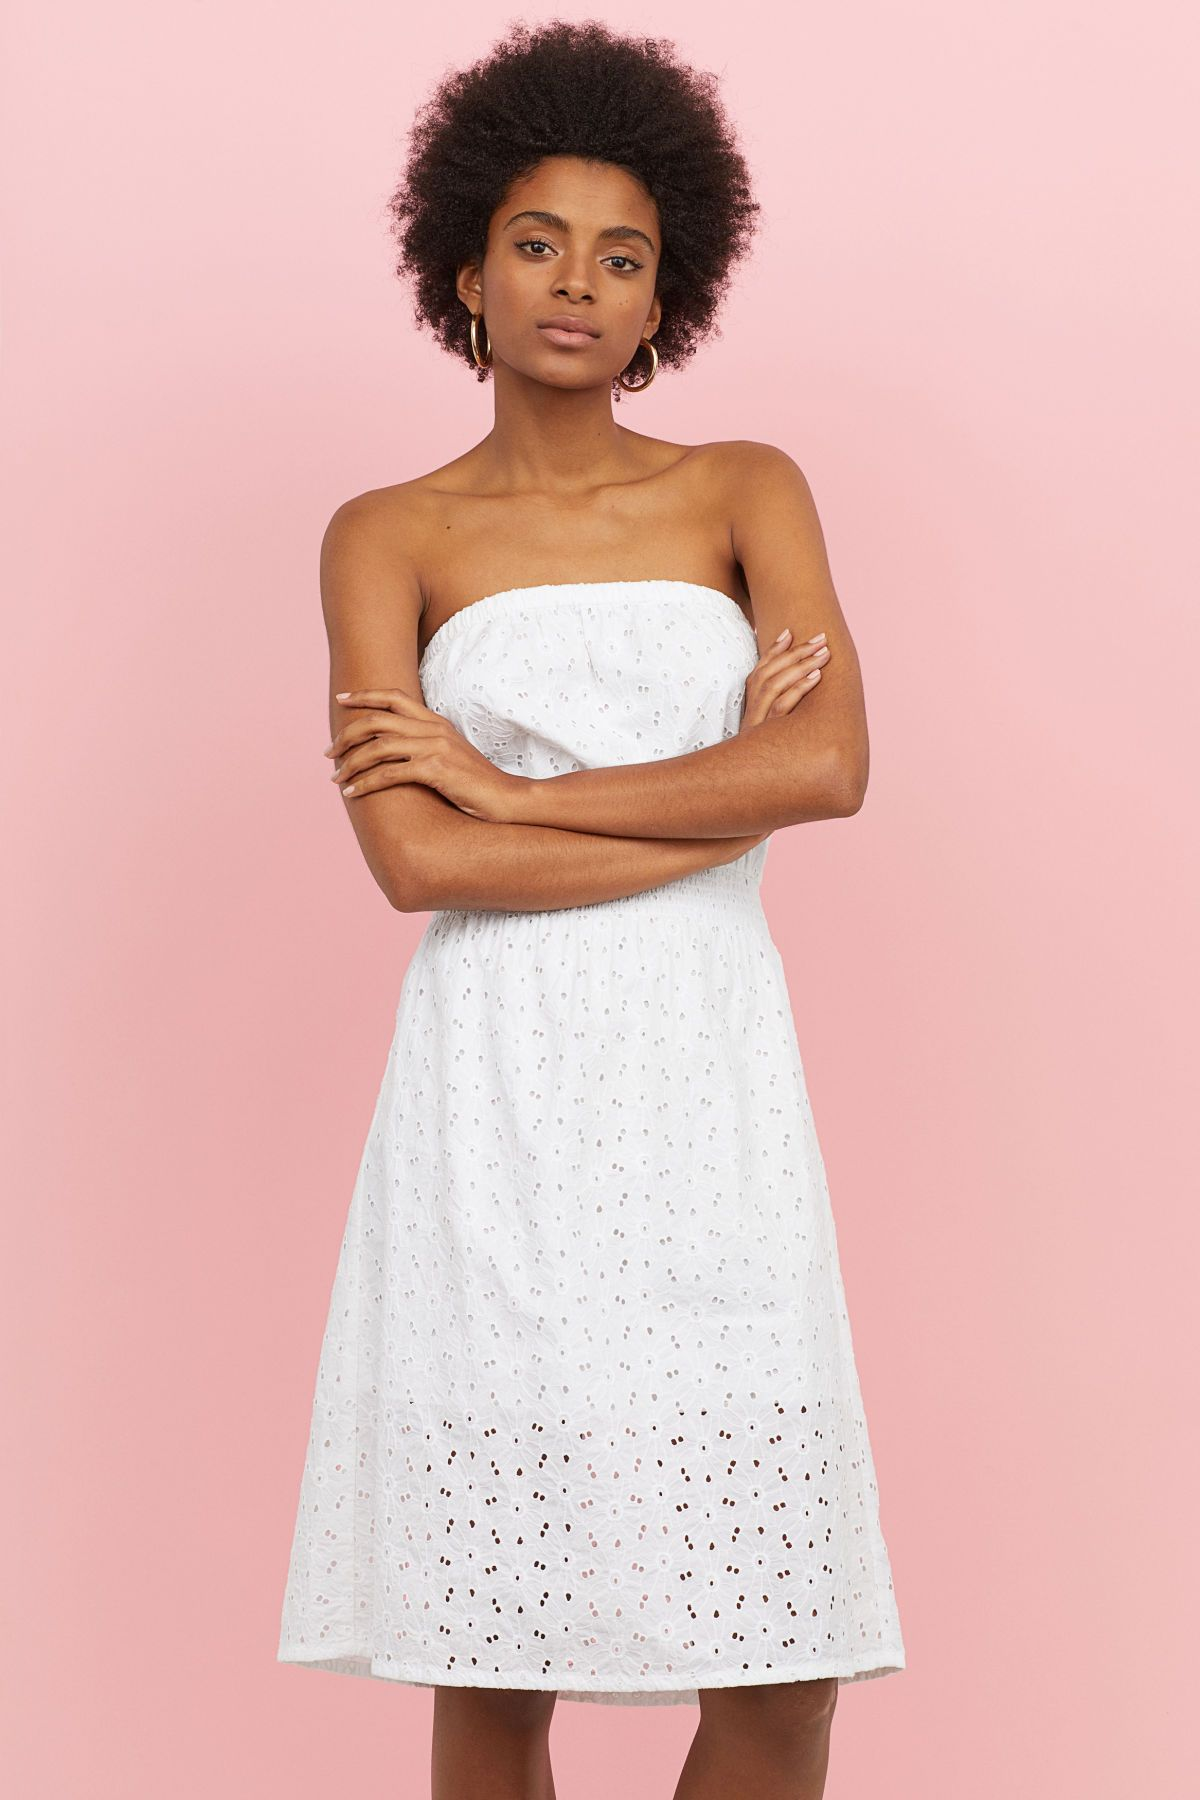 White Strapless Dress In Woven Cotton Fabric With Eyelet Embroidery Elastication At Top And A Smocked Waist L Strapless Dress Formal Strapless Dress Dresses